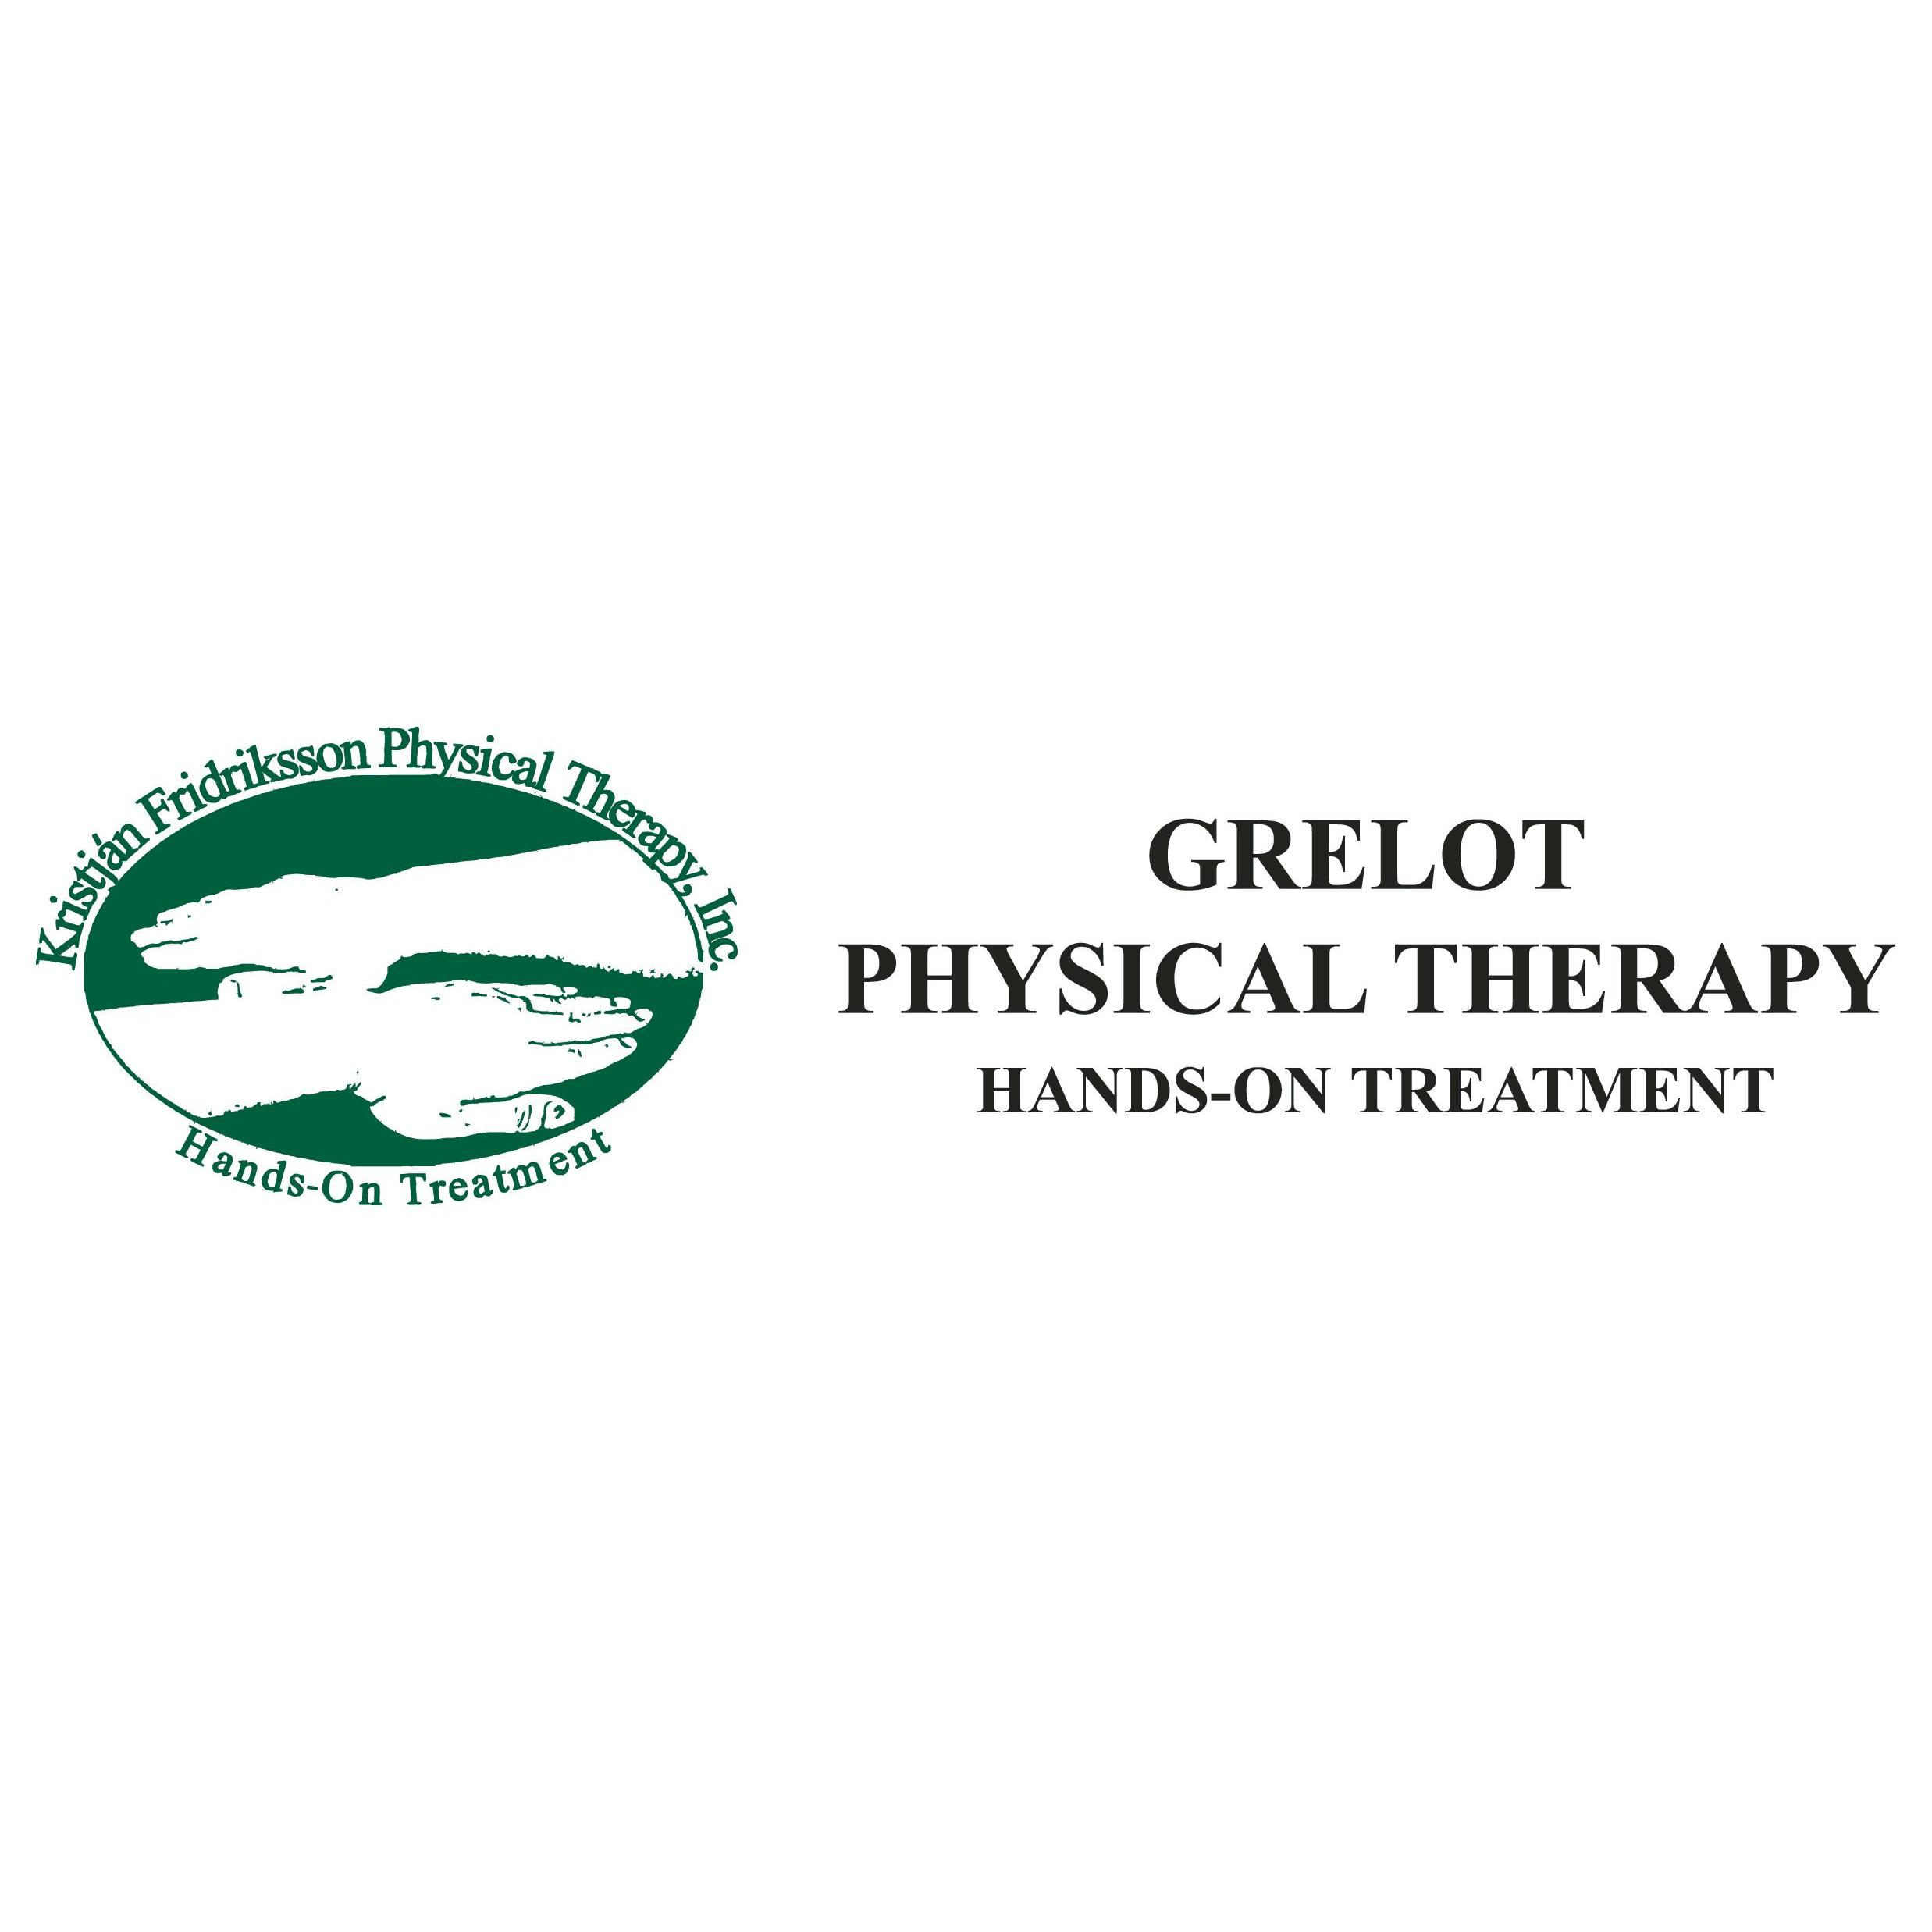 Grelot Physical Therapy